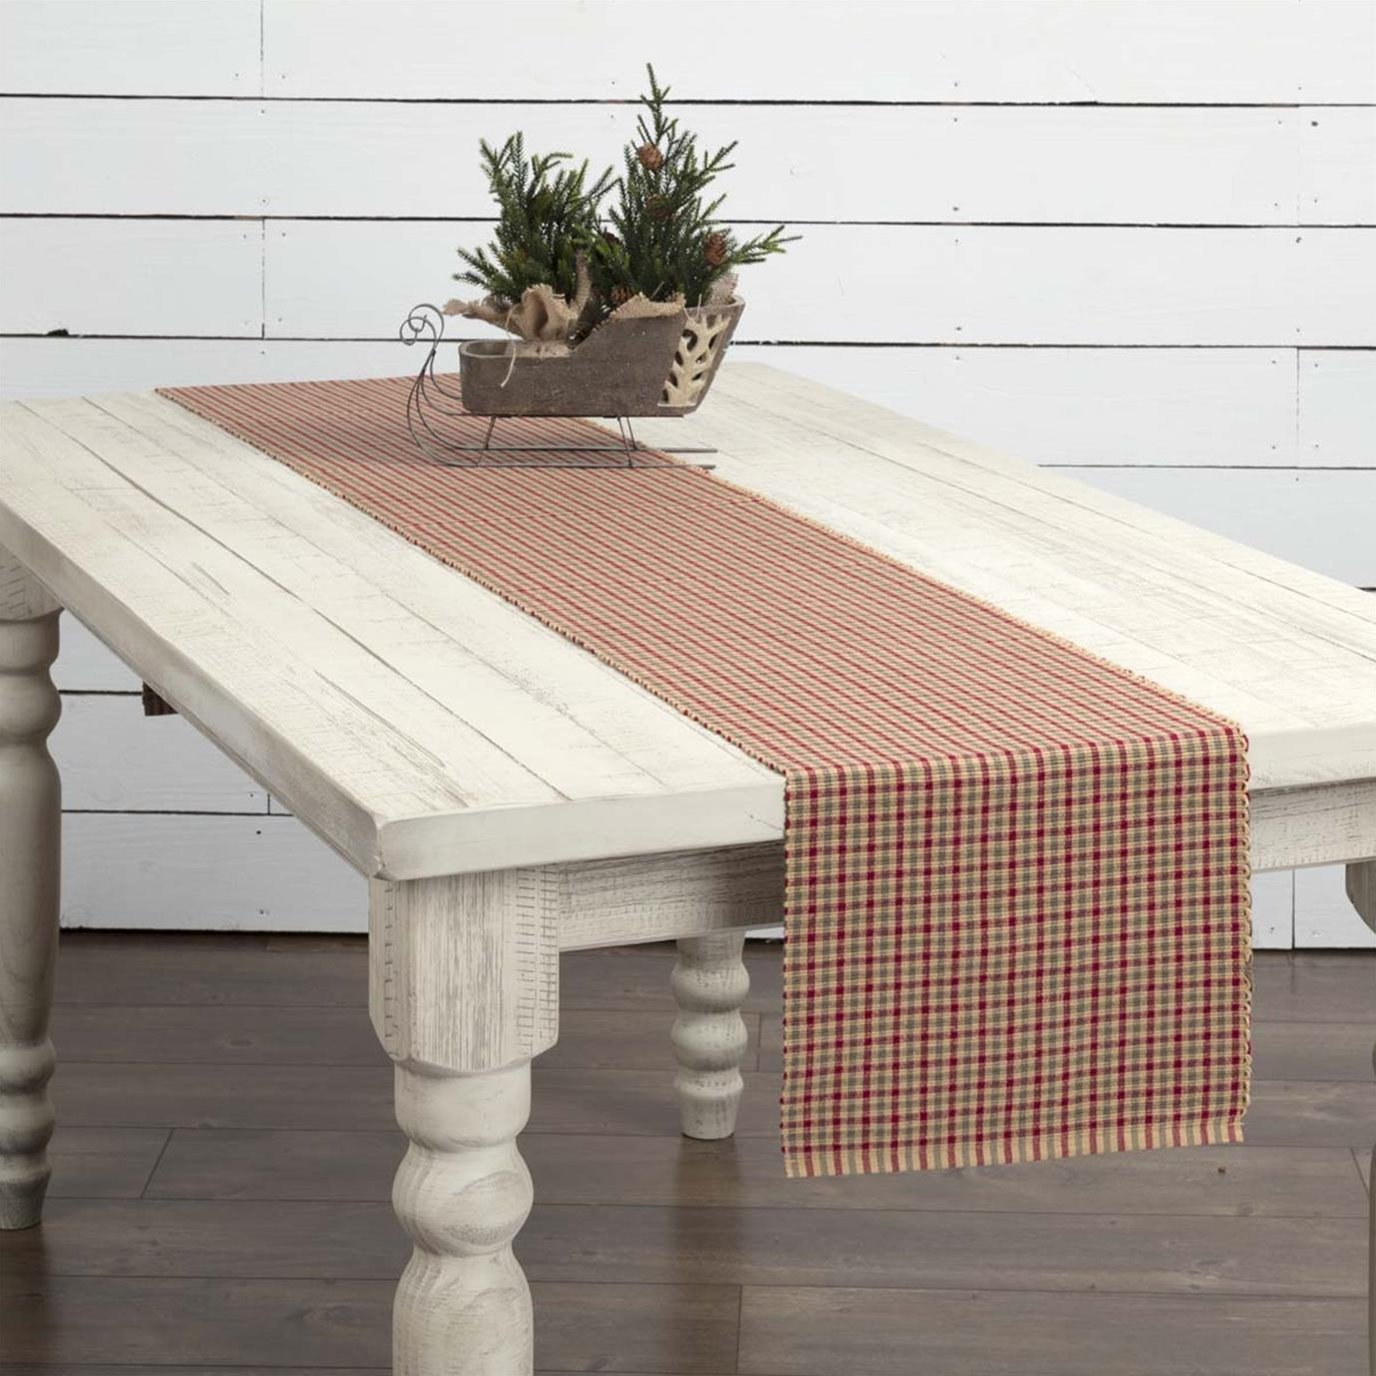 Jonathan Plaid Ribbed Runner 13x90